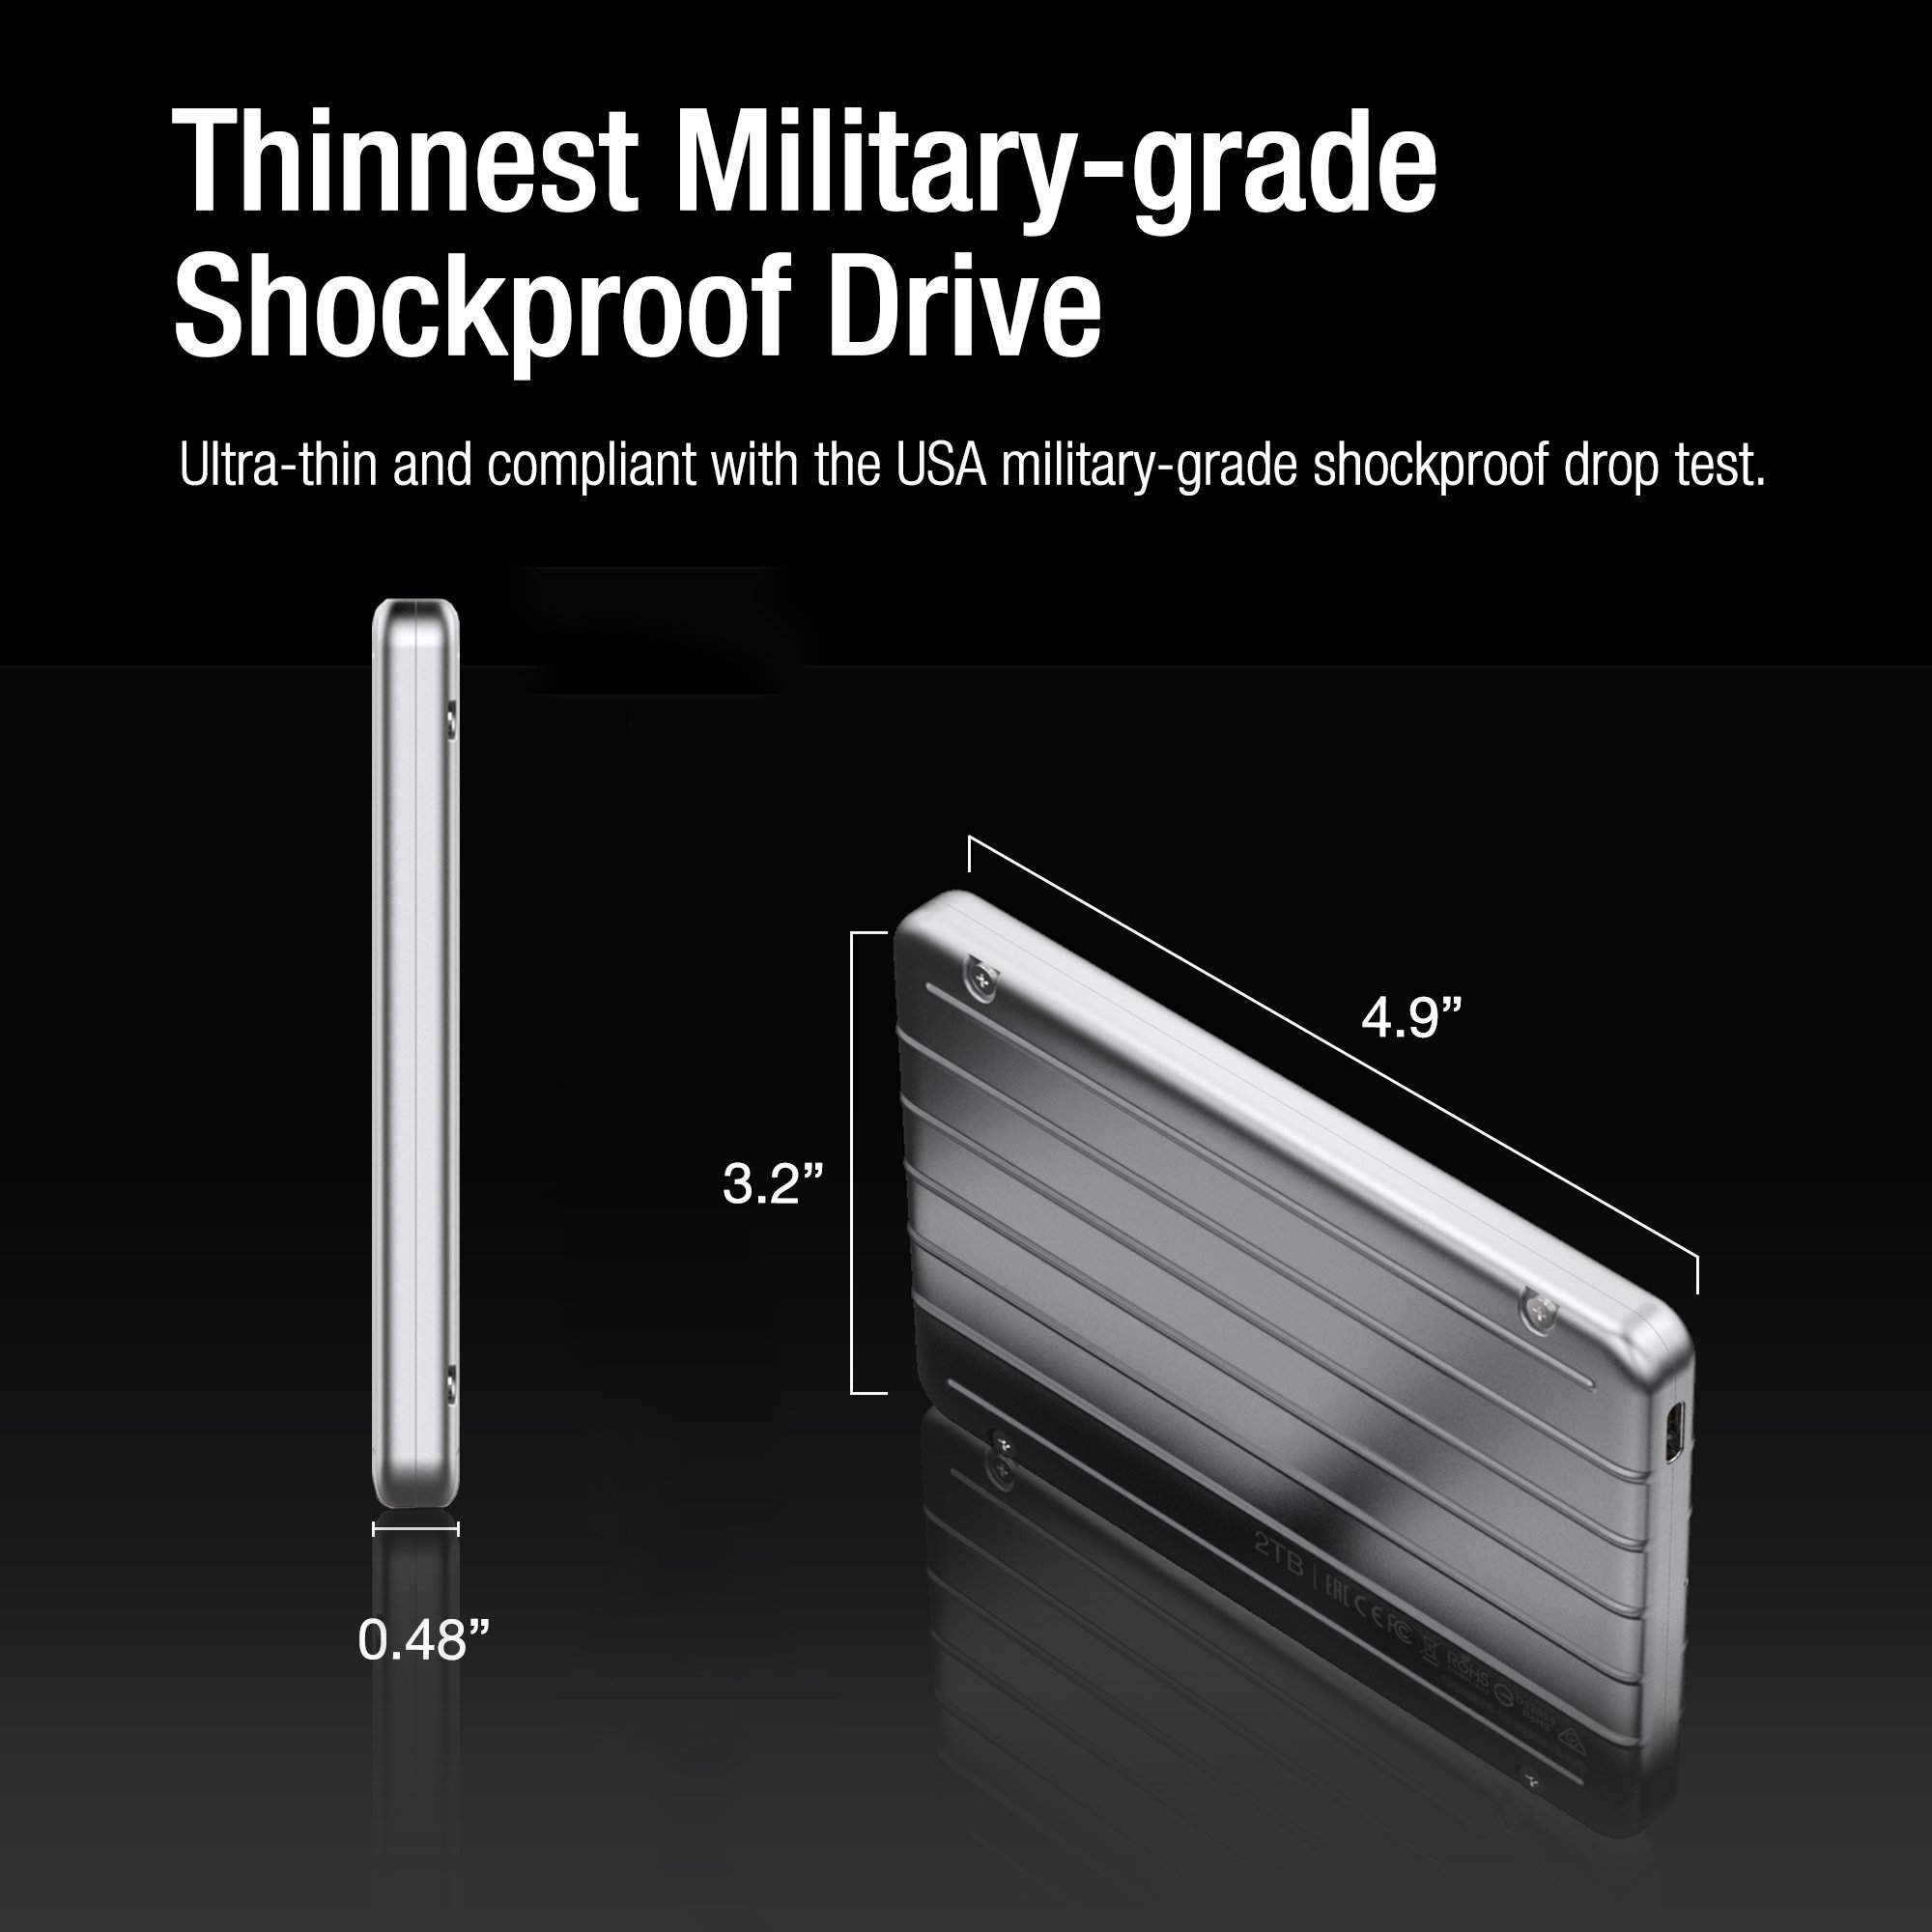 Silicon Power SU010TBPHDA75S3SAE 1TB Ultra Slim Rugged Armor A75 Shockproof USB 3.0 (USB 3.1 Gen 1) 2.5'' Portable External Hard Drive, Silver by Silicon Power (Image #2)